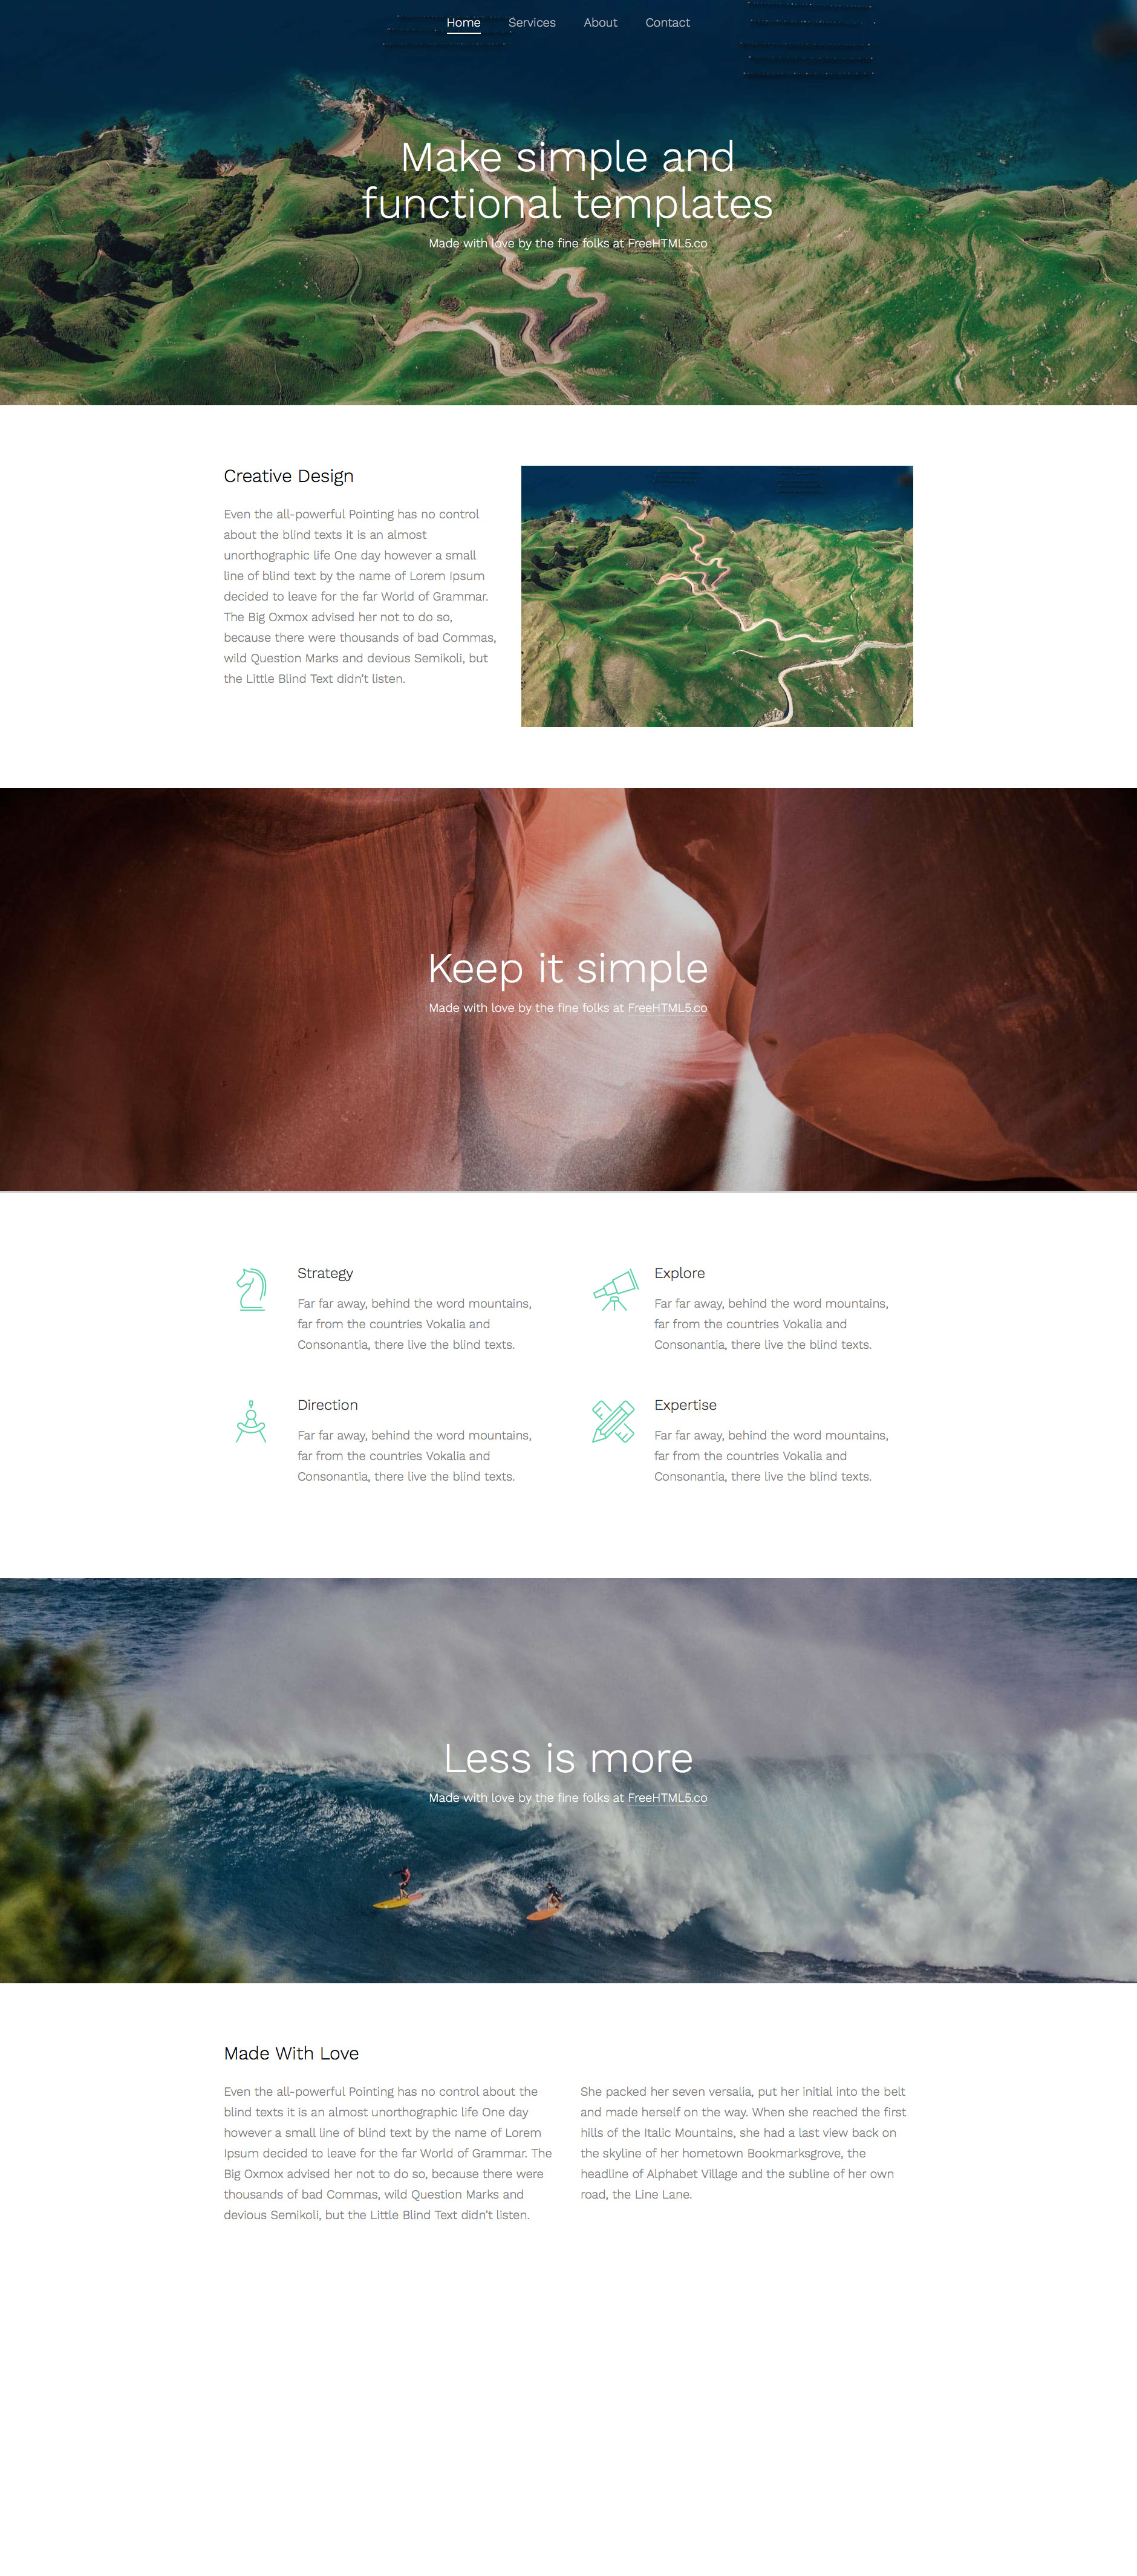 Simple is a free responsive HTML5 multi-purpose website template based on Bootstrap 3 front-end framework. Simple is ideal choice for any kind of business websites. This template is fully responsive and comes with the latest technology like smooth parallax, HTML5 and CSS3.